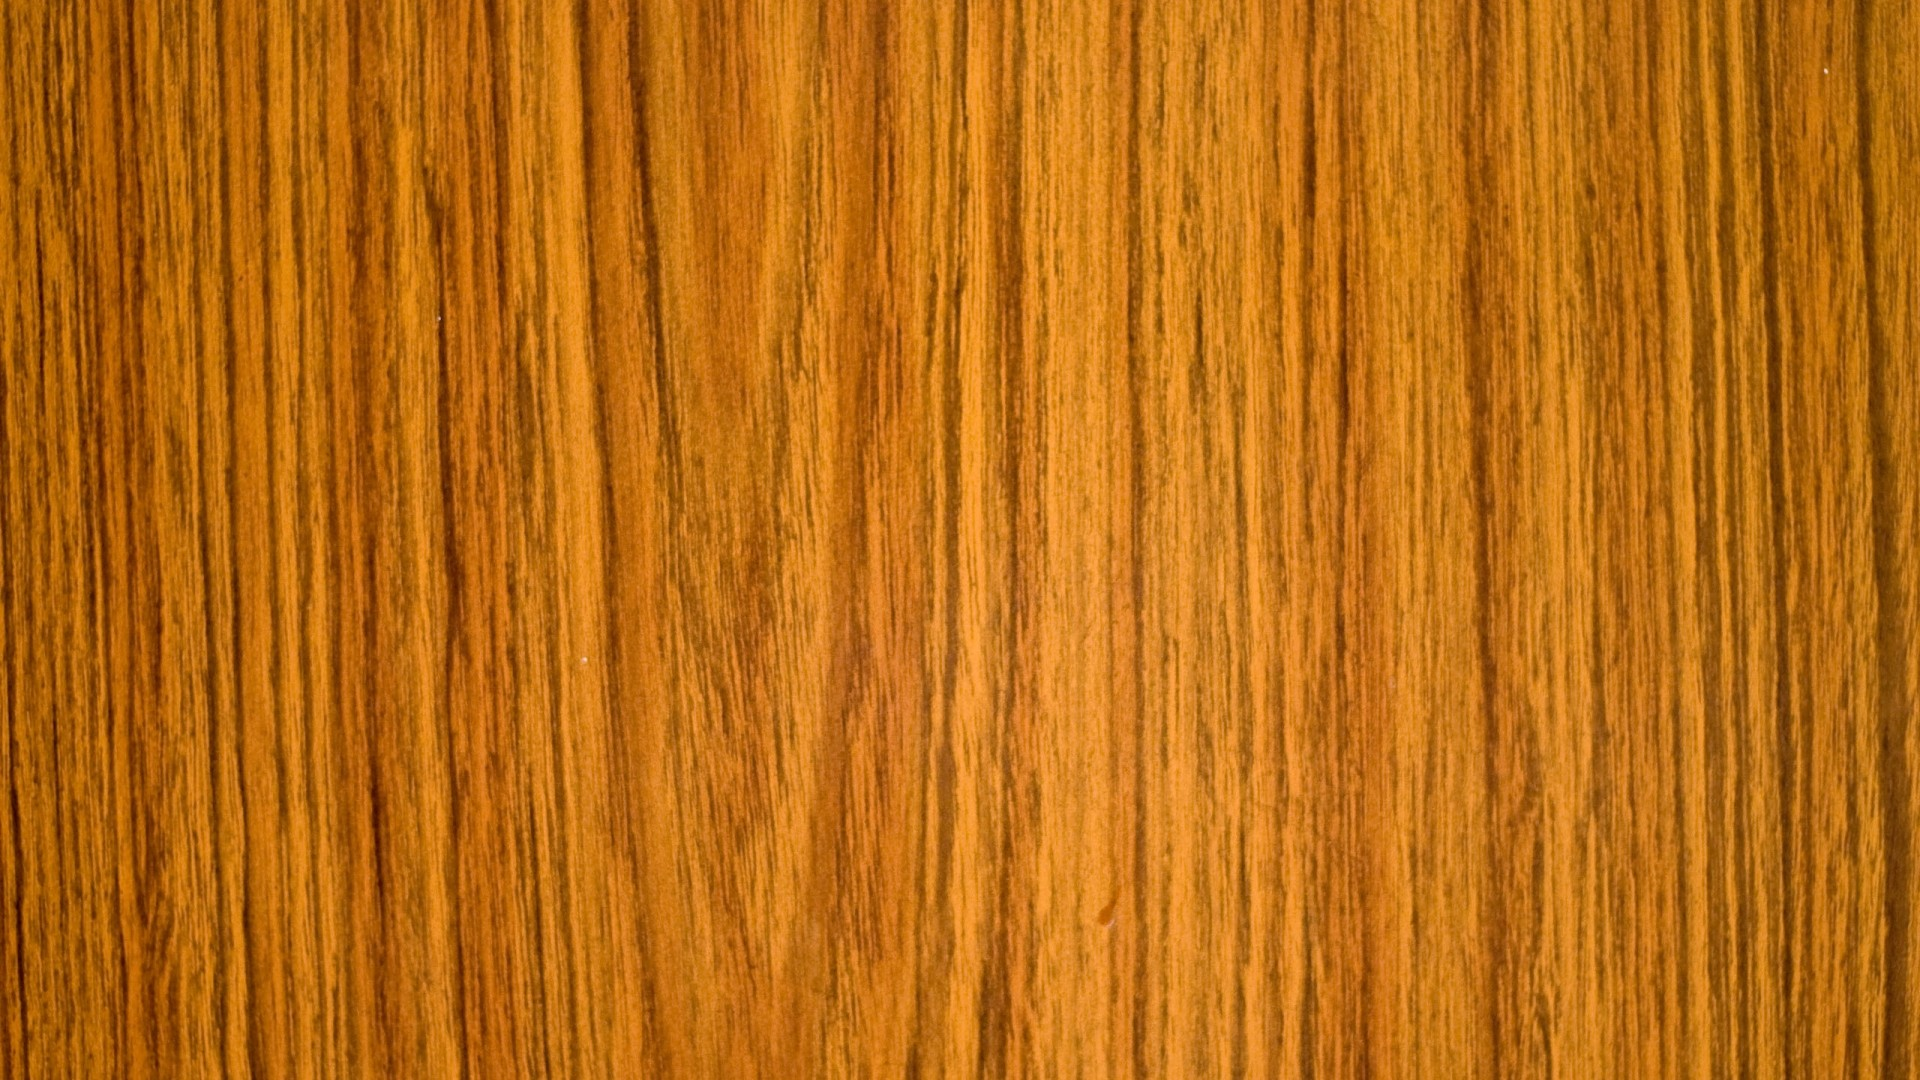 Wood Grain hd desktop wallpaper